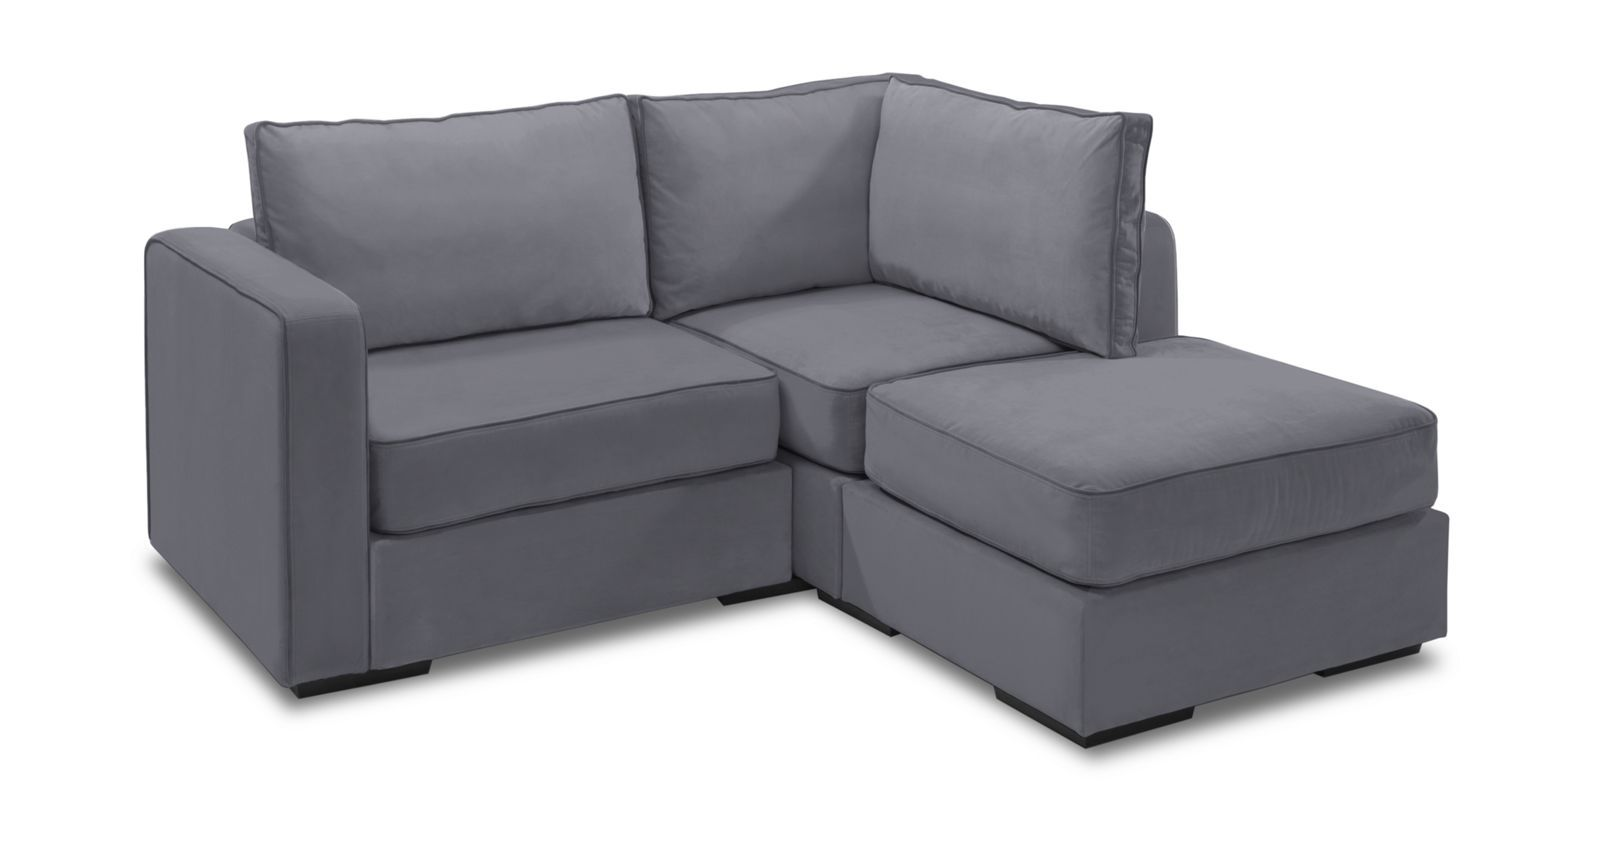 3 Seats 4 Sides 76 X 70 2142 Lovesac Com Furniture For Small Spaces Small Sectional Sofa Couches For Small Spaces